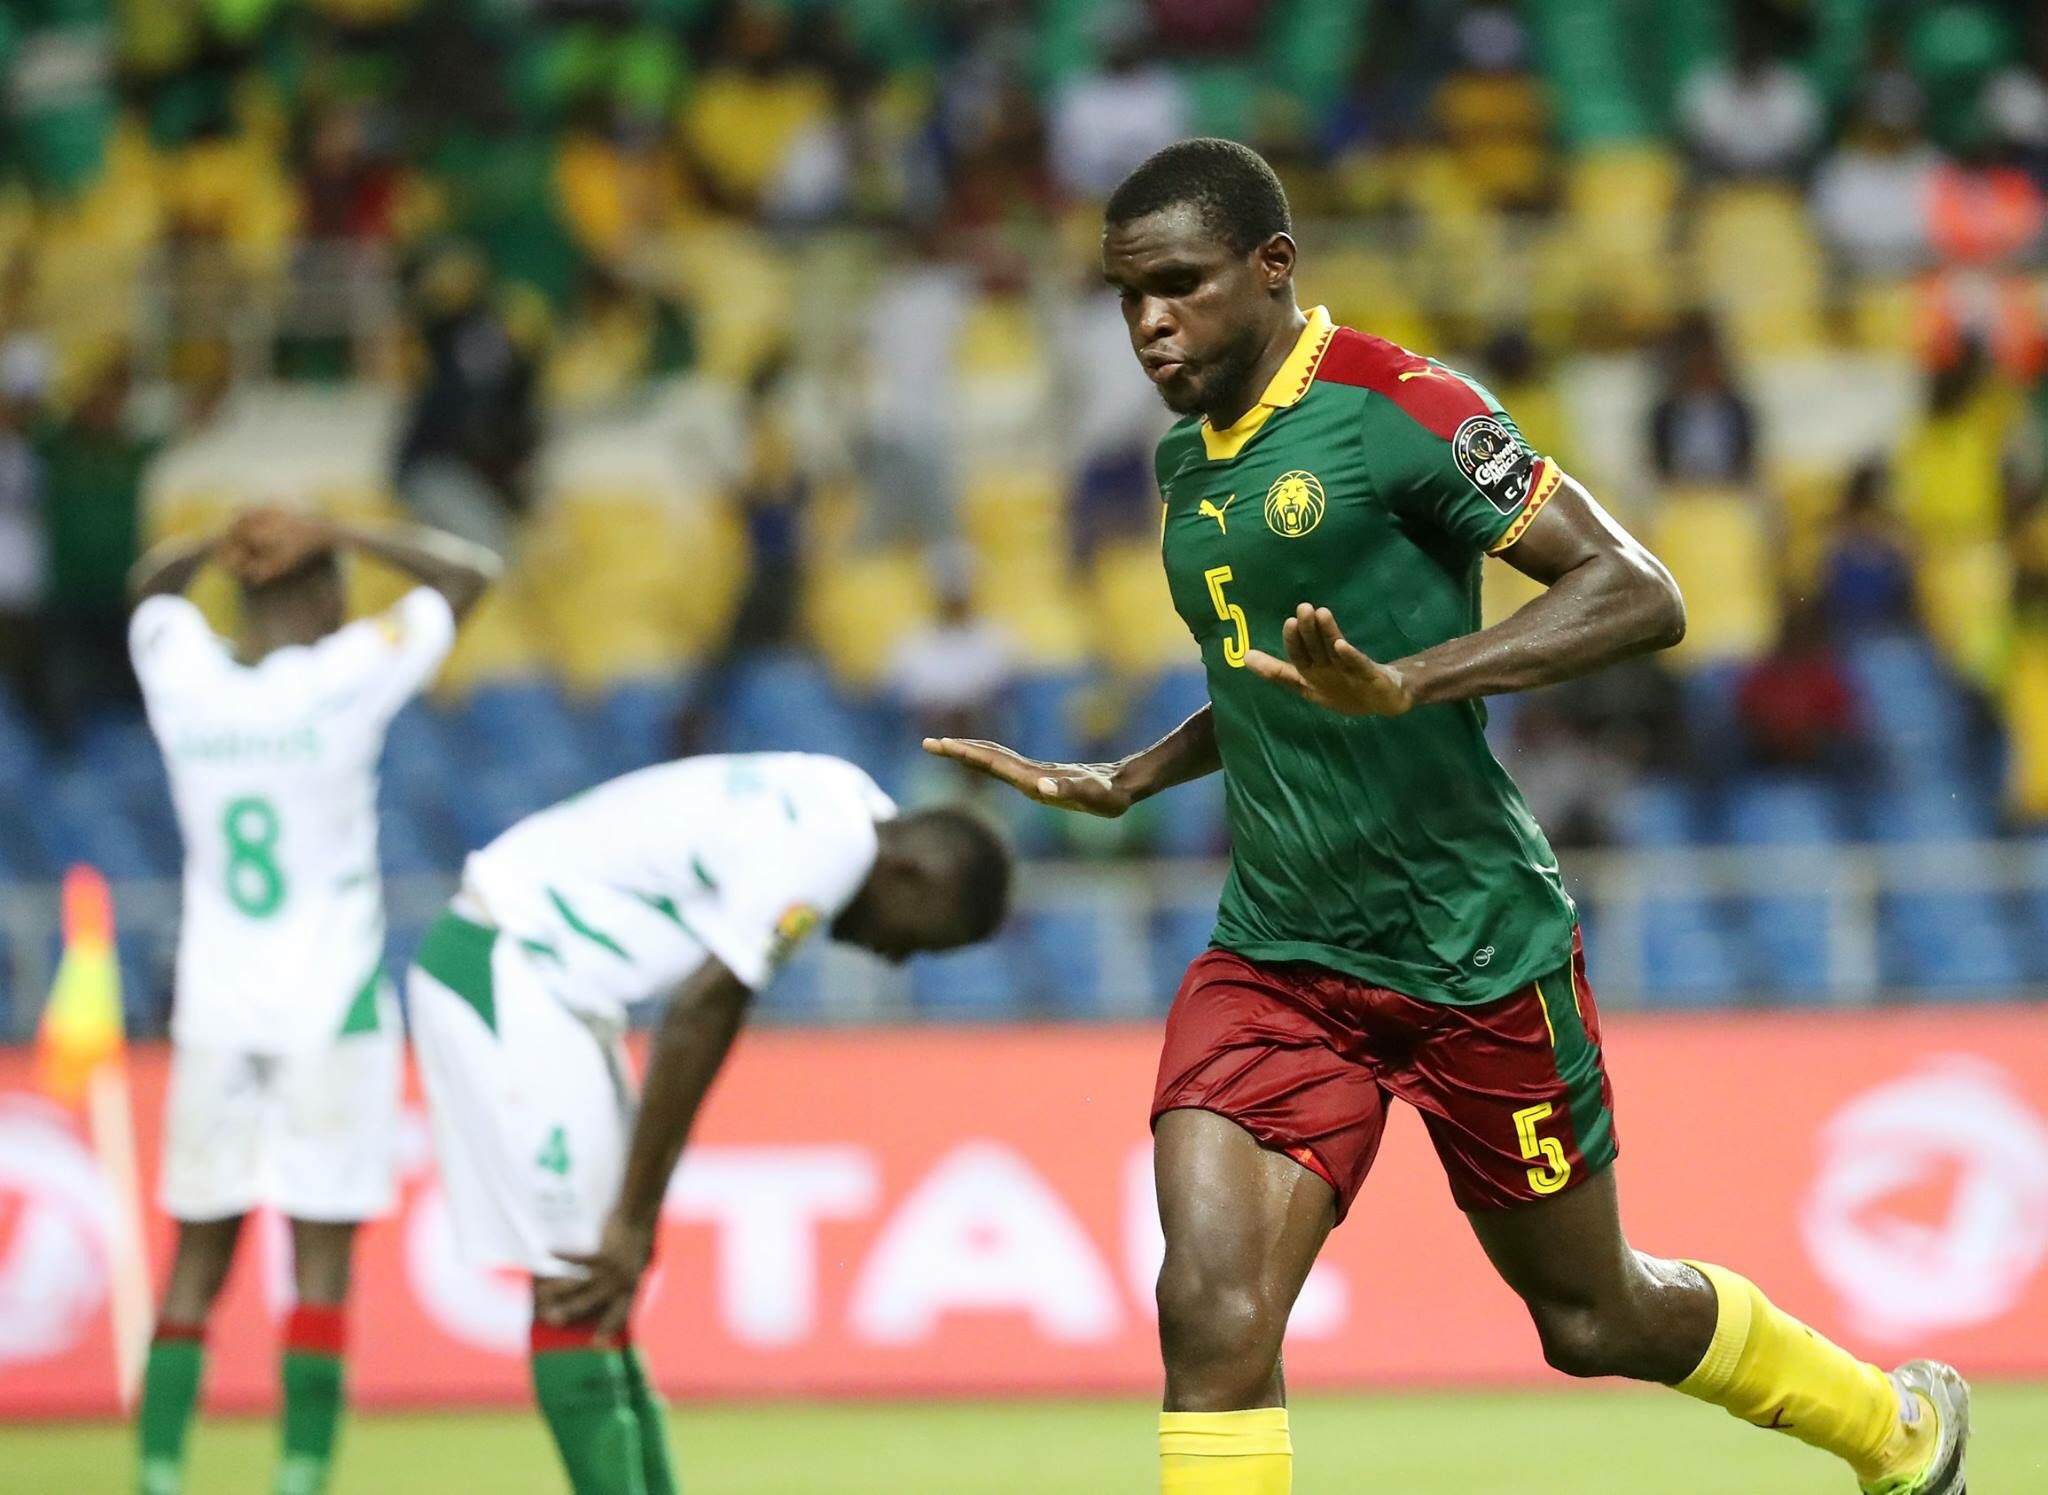 AFCON: Mane Misses Penalty As Cameroon Stop Senegal, Reach Semis